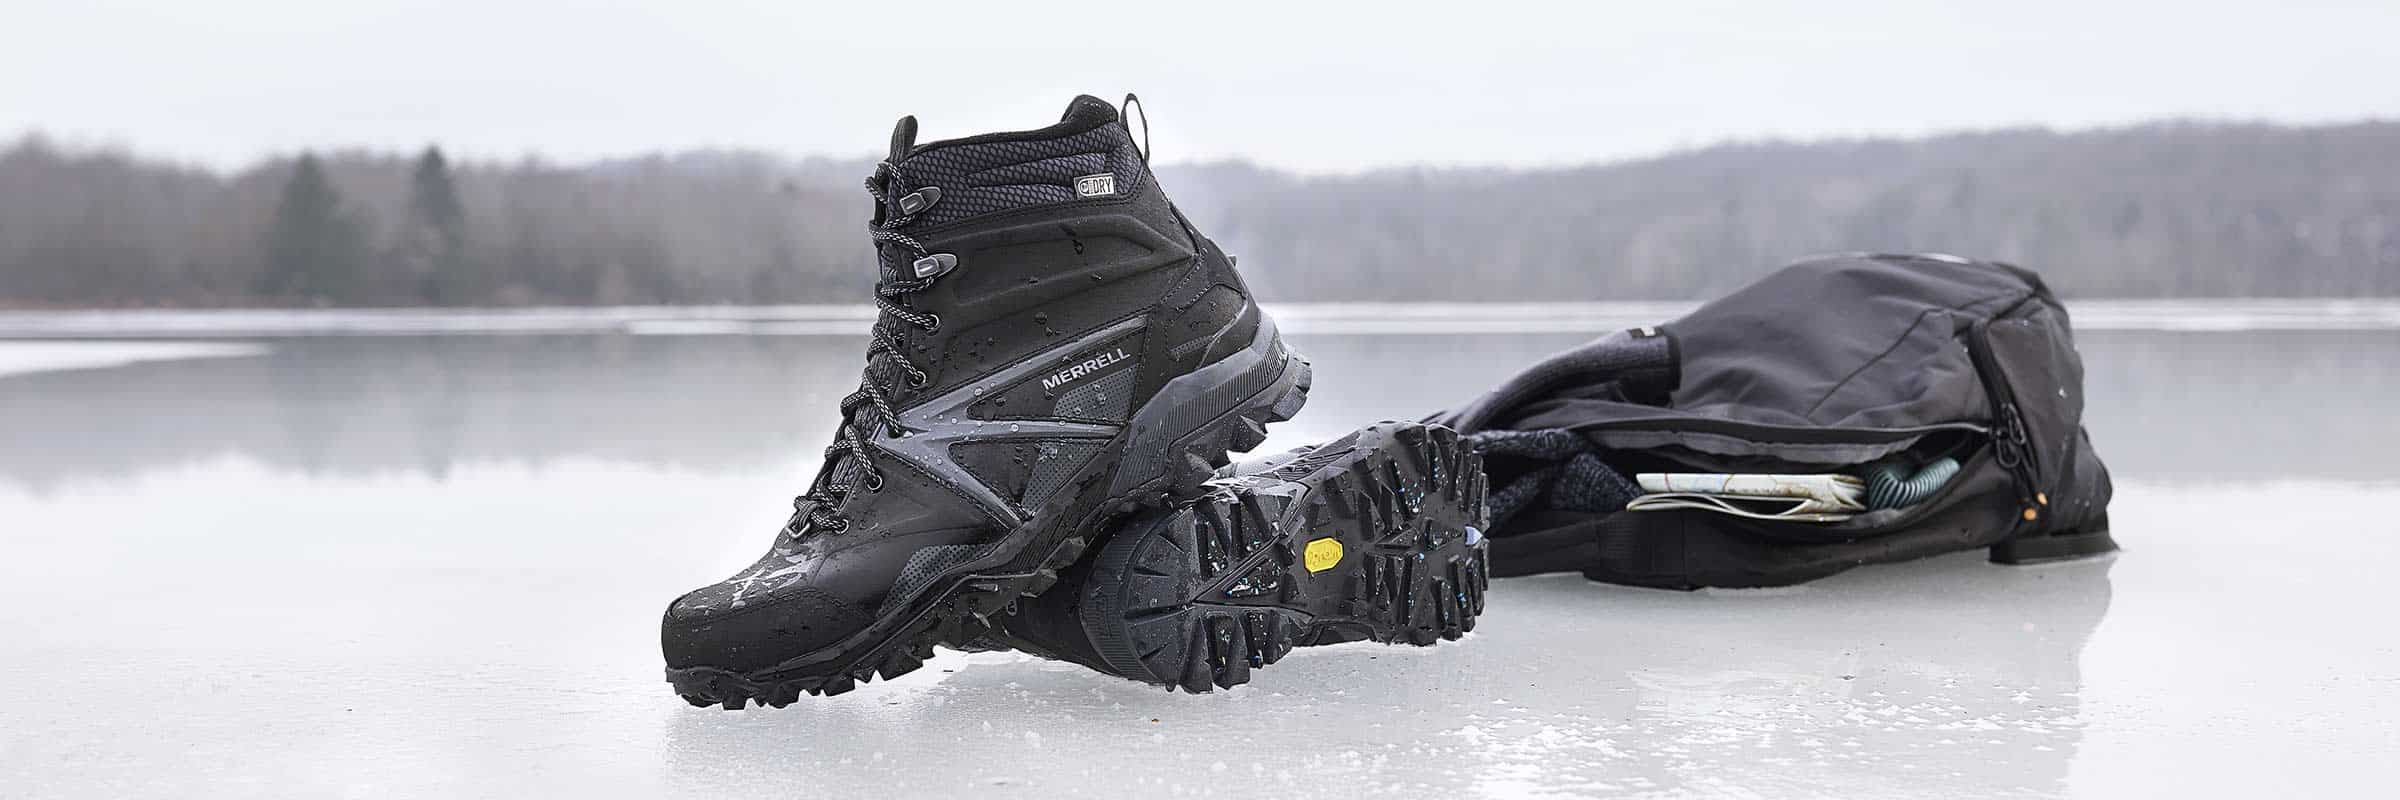 162f439e58 With Vibram Arctic Grip™ Soles, You'll Never Slip on Ice Again